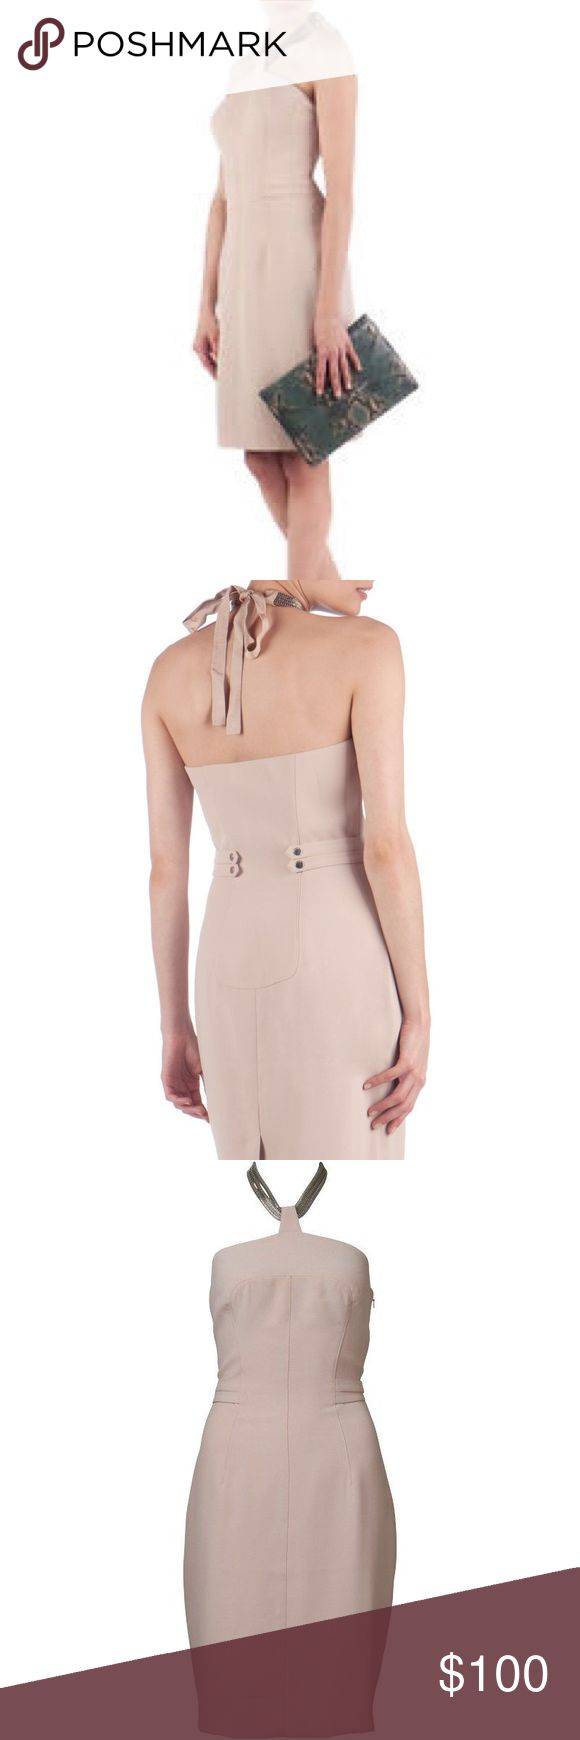 🎉1 DAY SALE🎉 New Ted Baker ANMO Halter Dress Beautiful new, never worn Ted Baker ANMO halter neck dress in tan with chain halter. Original brand tag marked to prevent store return. Size 4 Ted Baker is a Size 10 US. 👗1 DAY SALE price is firm👗 Ted Baker Dresses